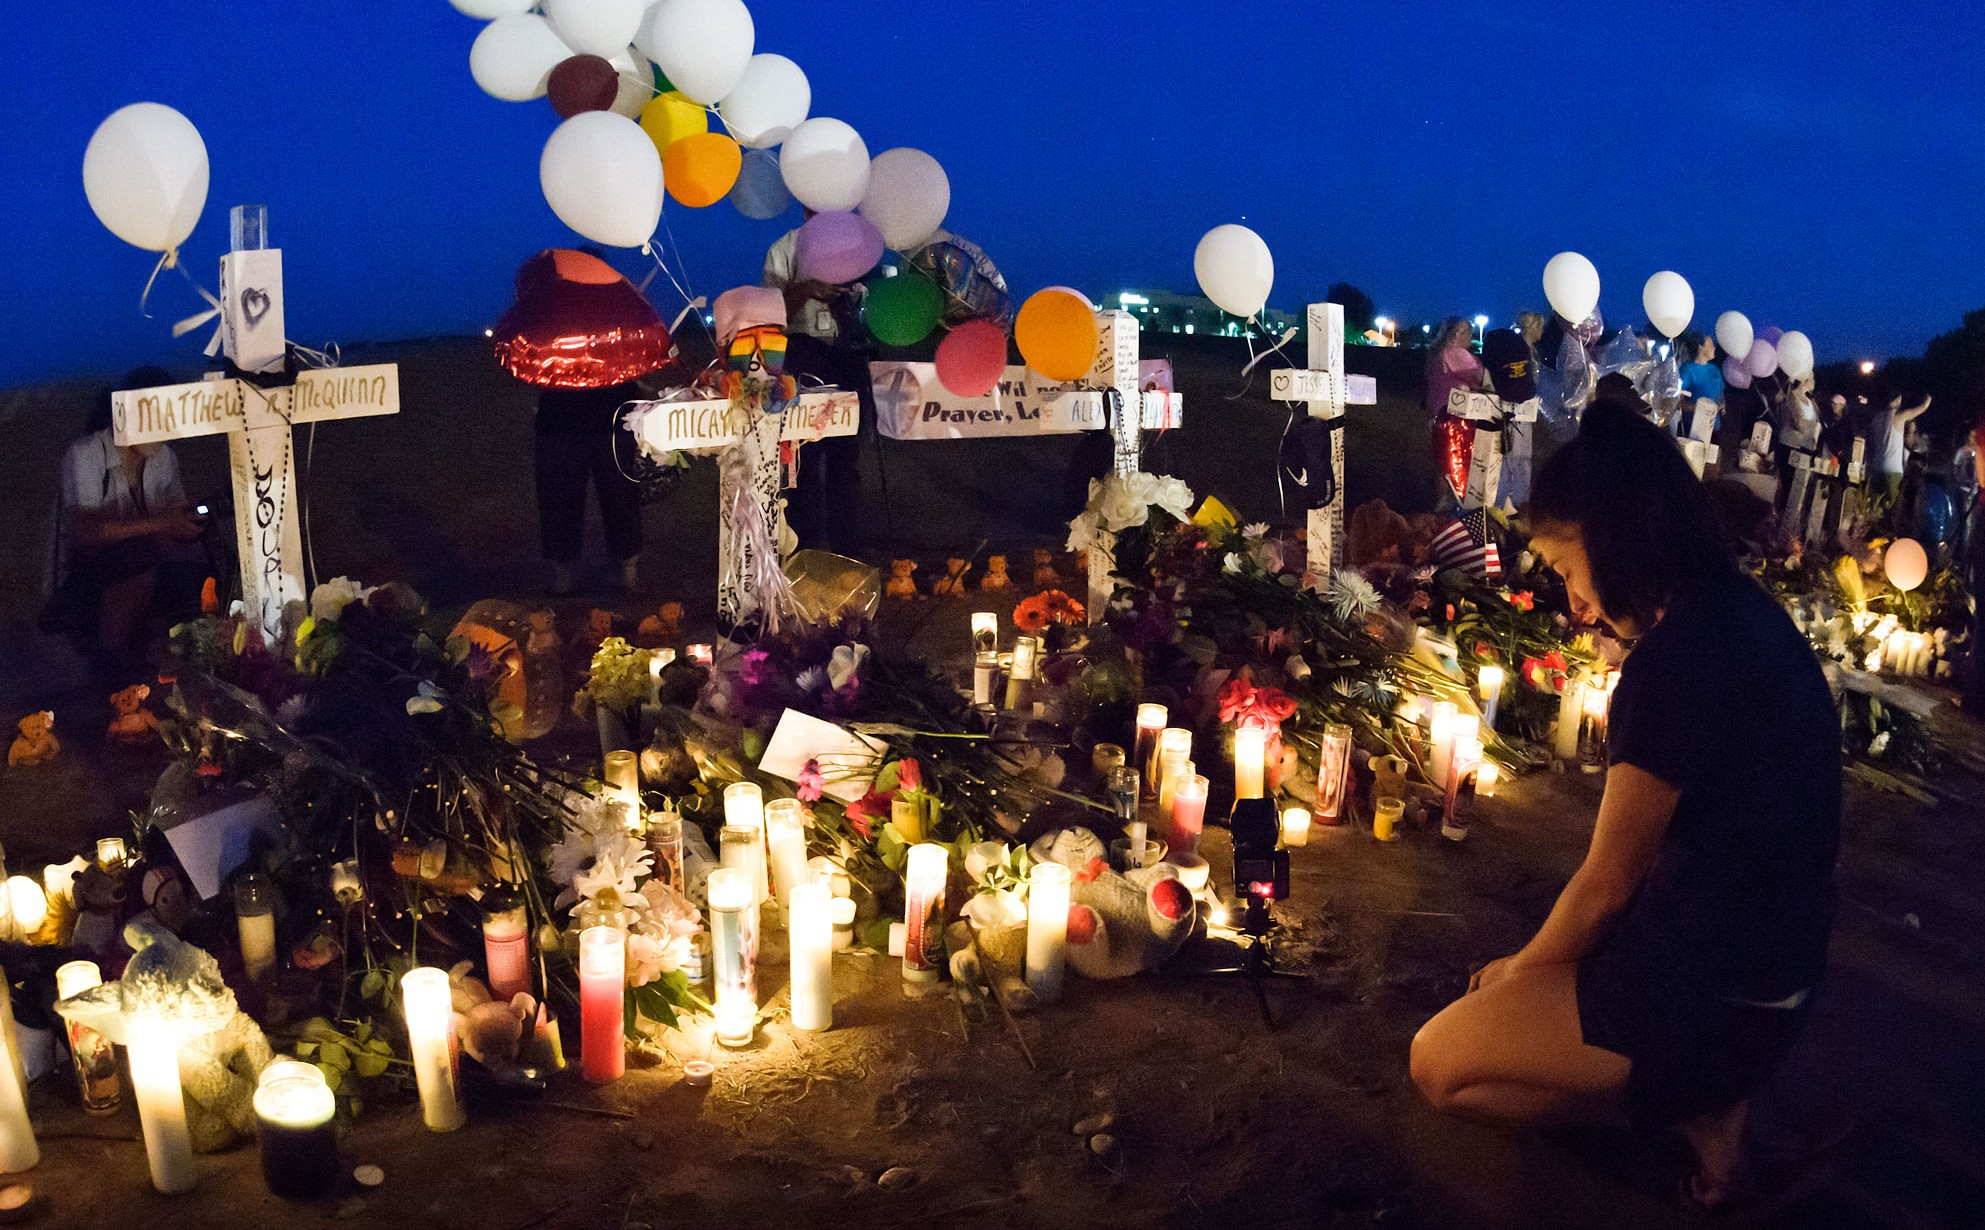 A memorial to victims of the Aurora theater murders. (Credit: David Harpe)